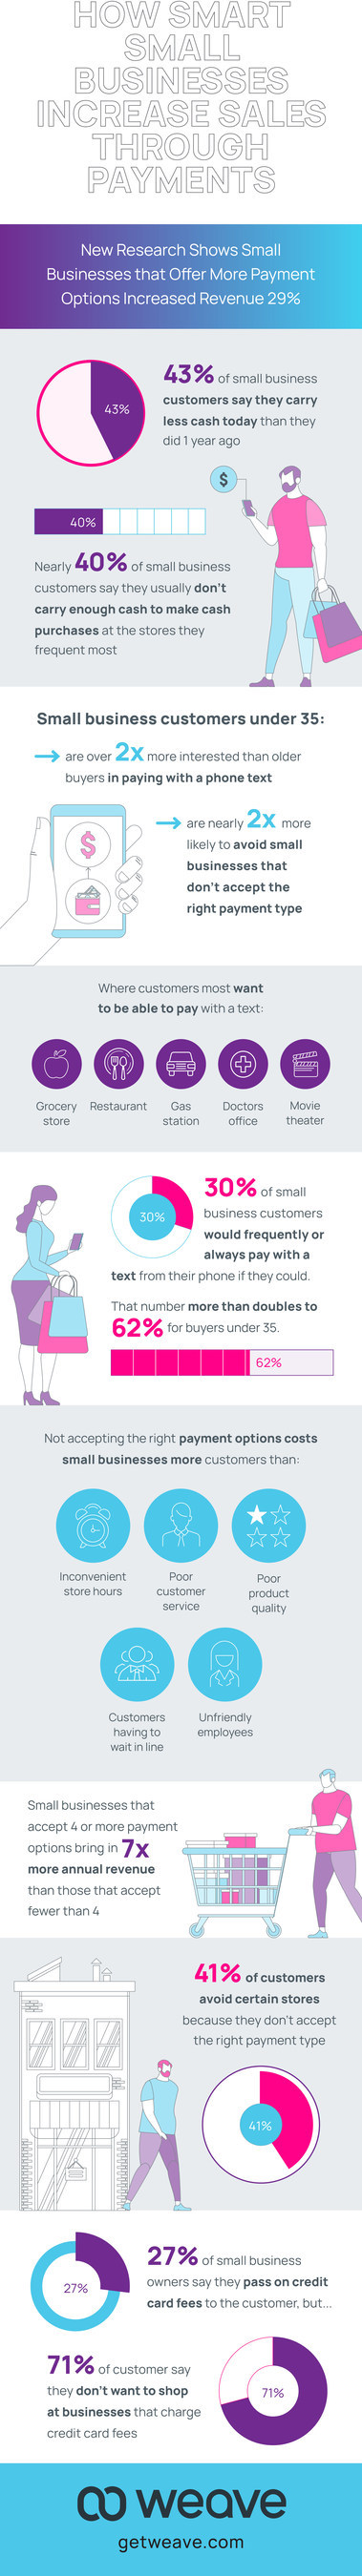 35% of Customers Will Use SMS Payments but Only 4% of Small Businesses Offer Option